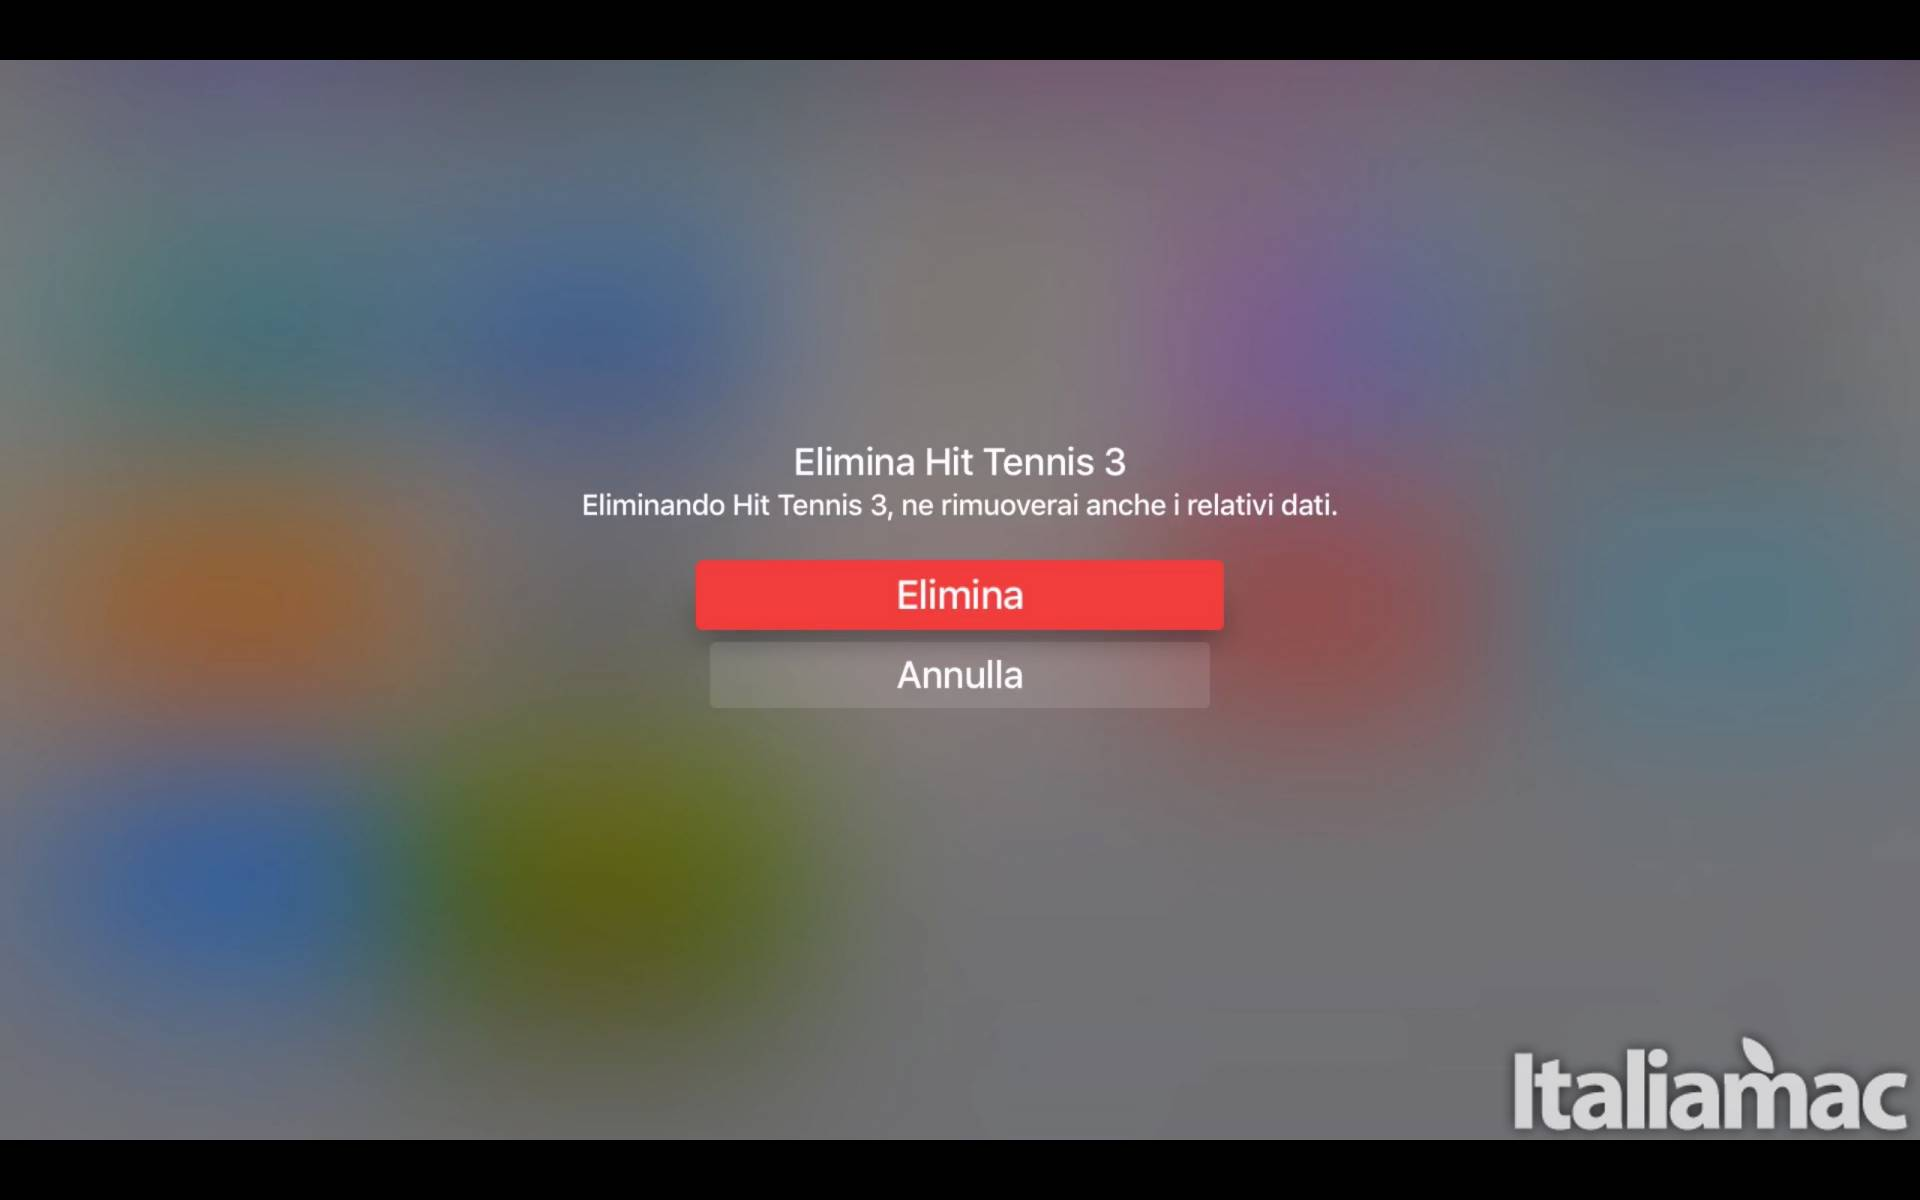 schermata apple tv eliminazione Come eliminare un app da Apple TV